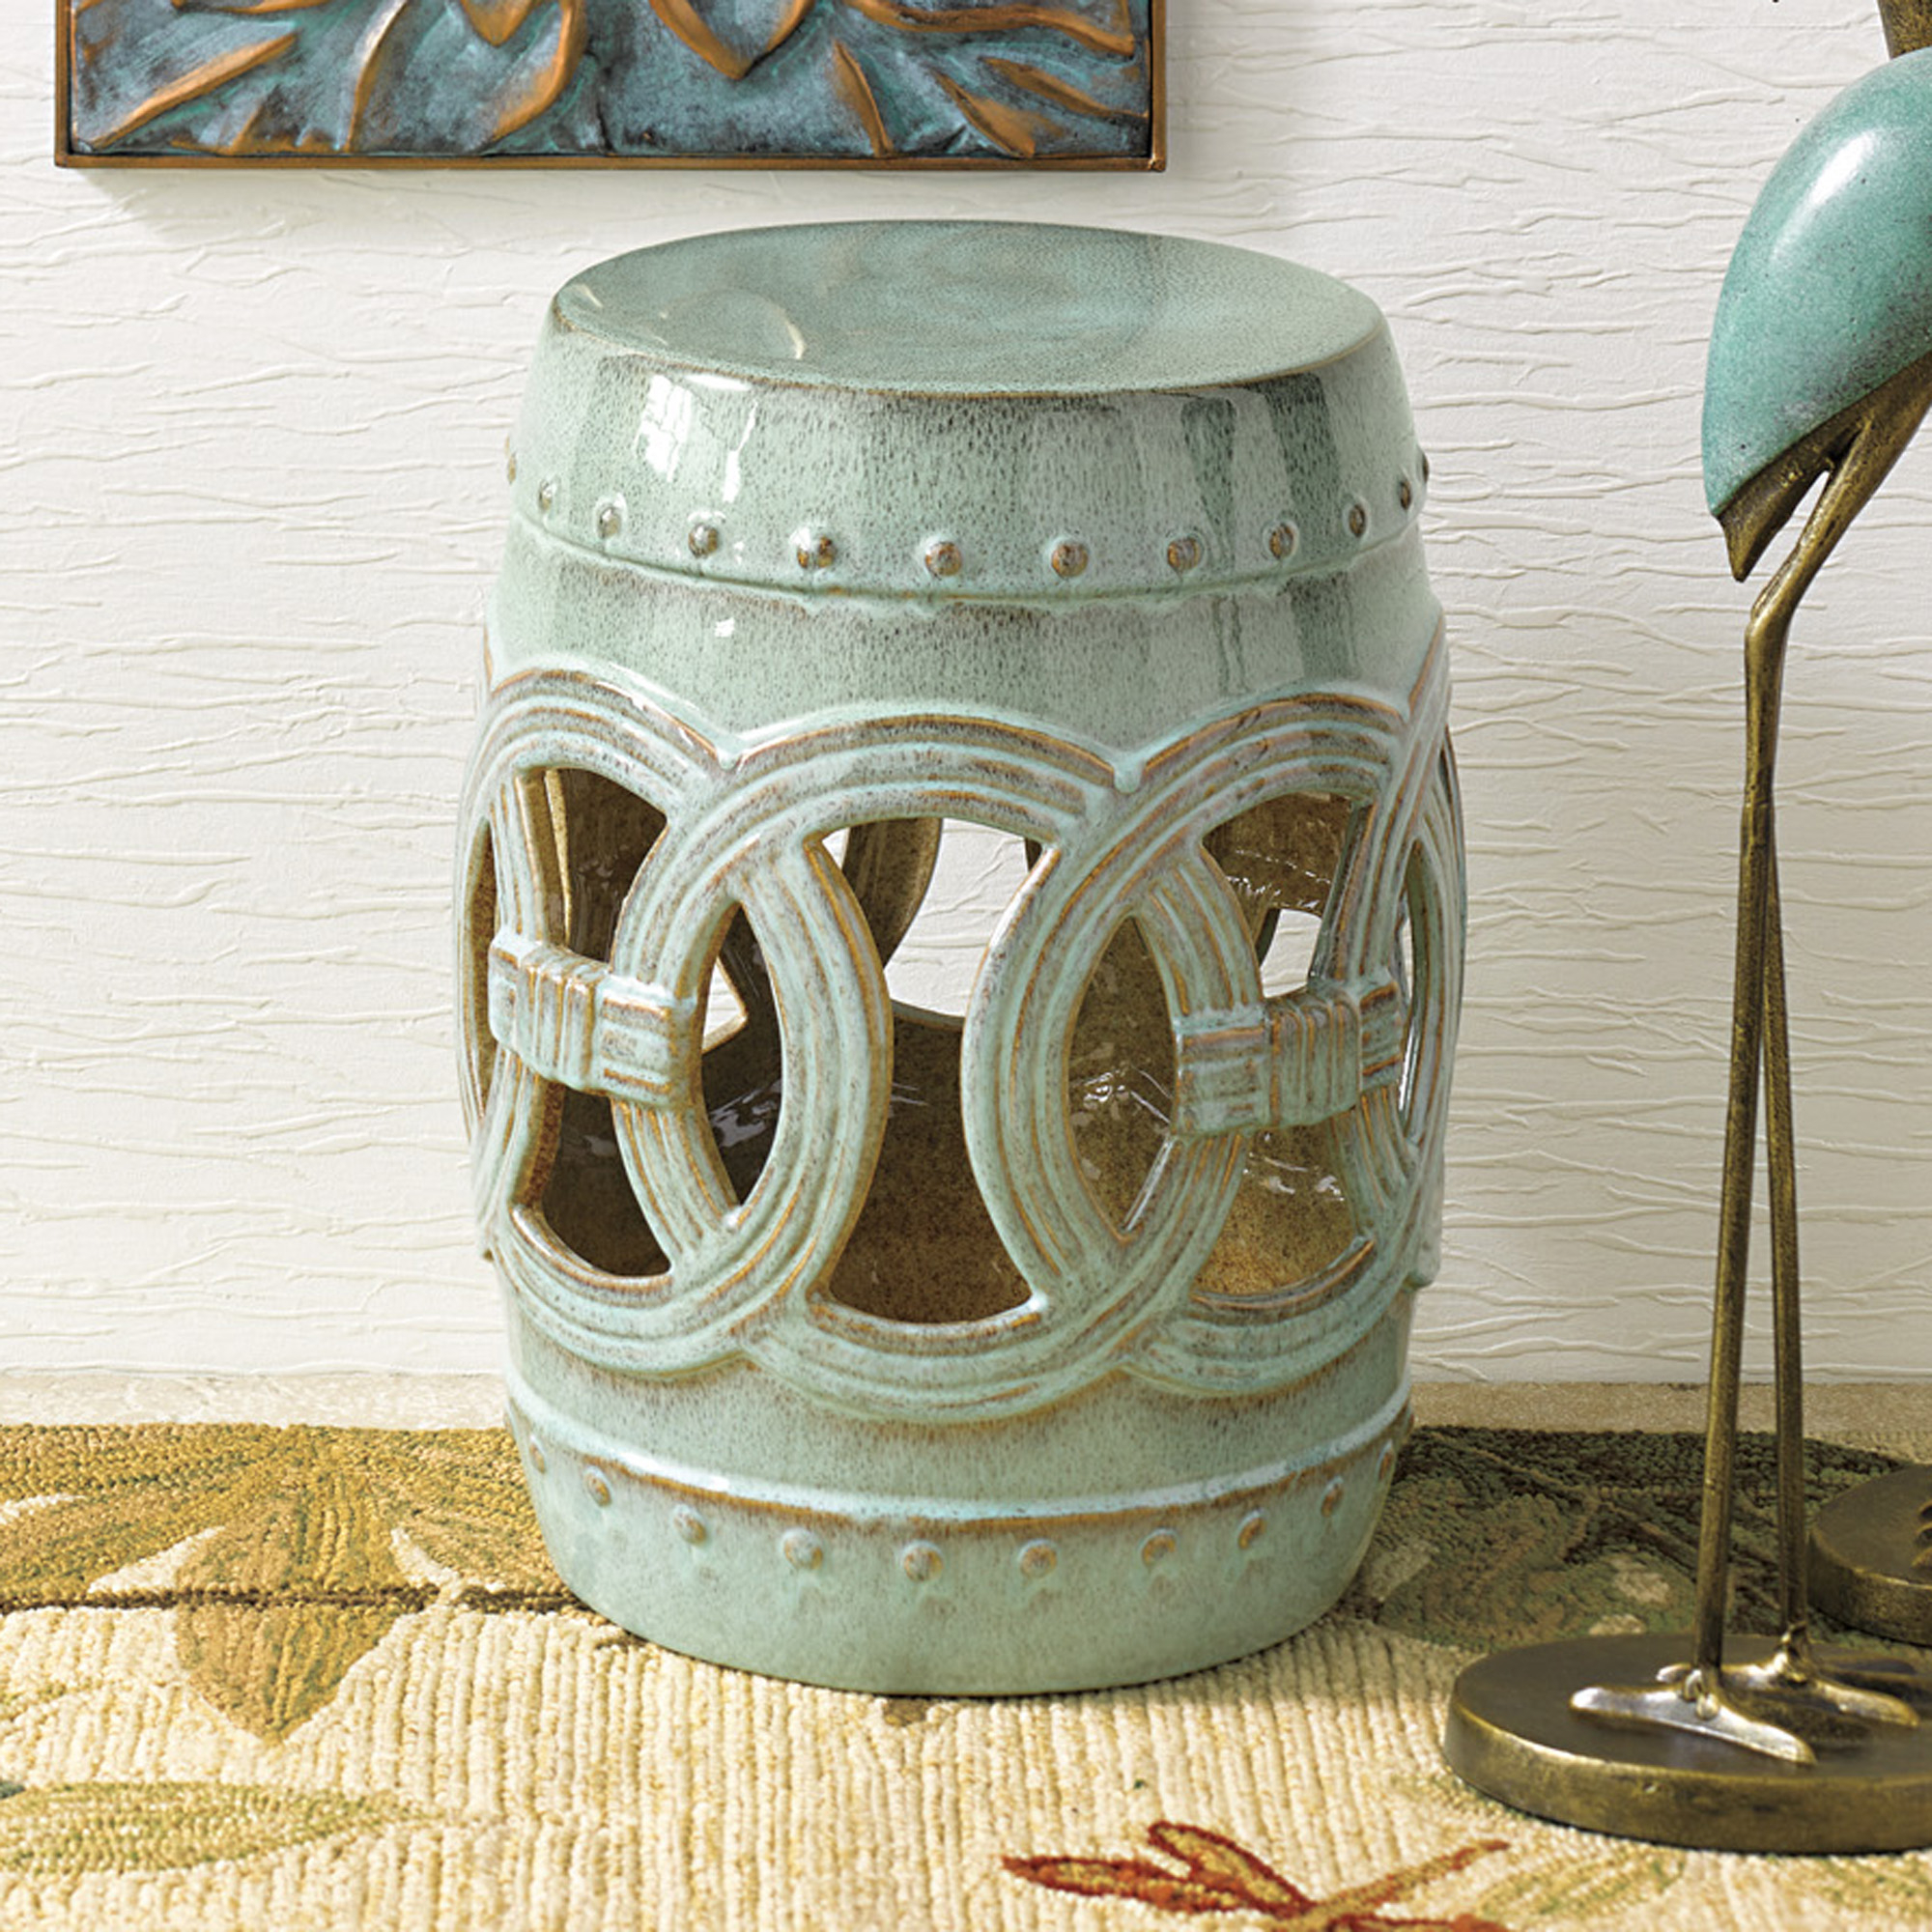 Linking Rings Garden Stool, Seaglass Blue